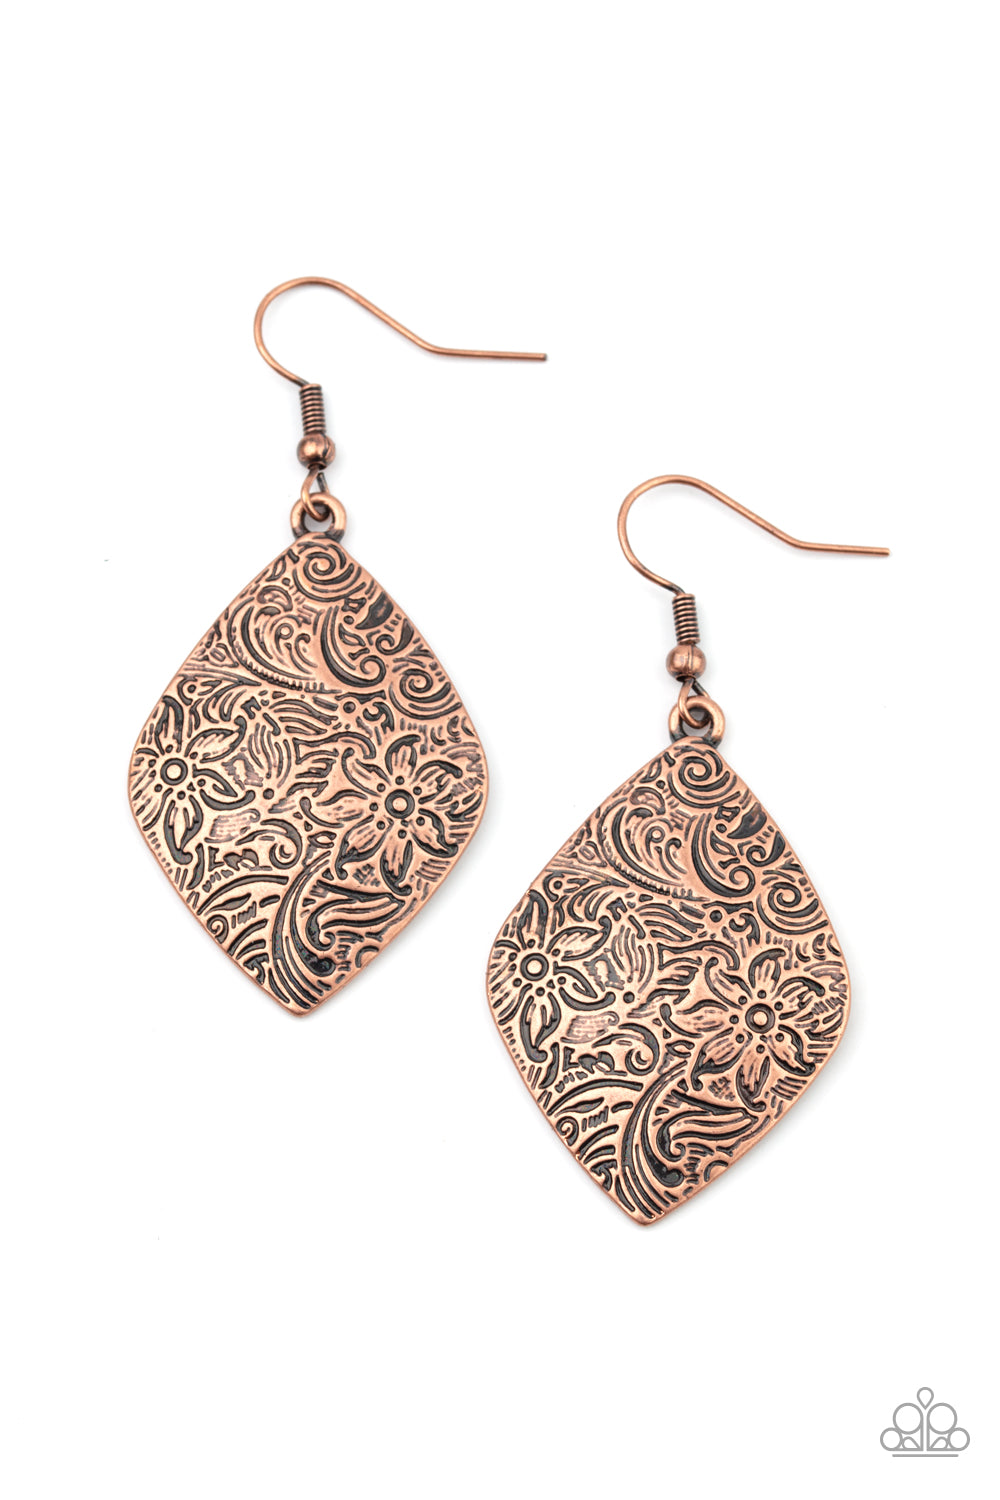 five-dollar-jewelry-flauntable-florals-copper-earrings-paparazzi-accessories